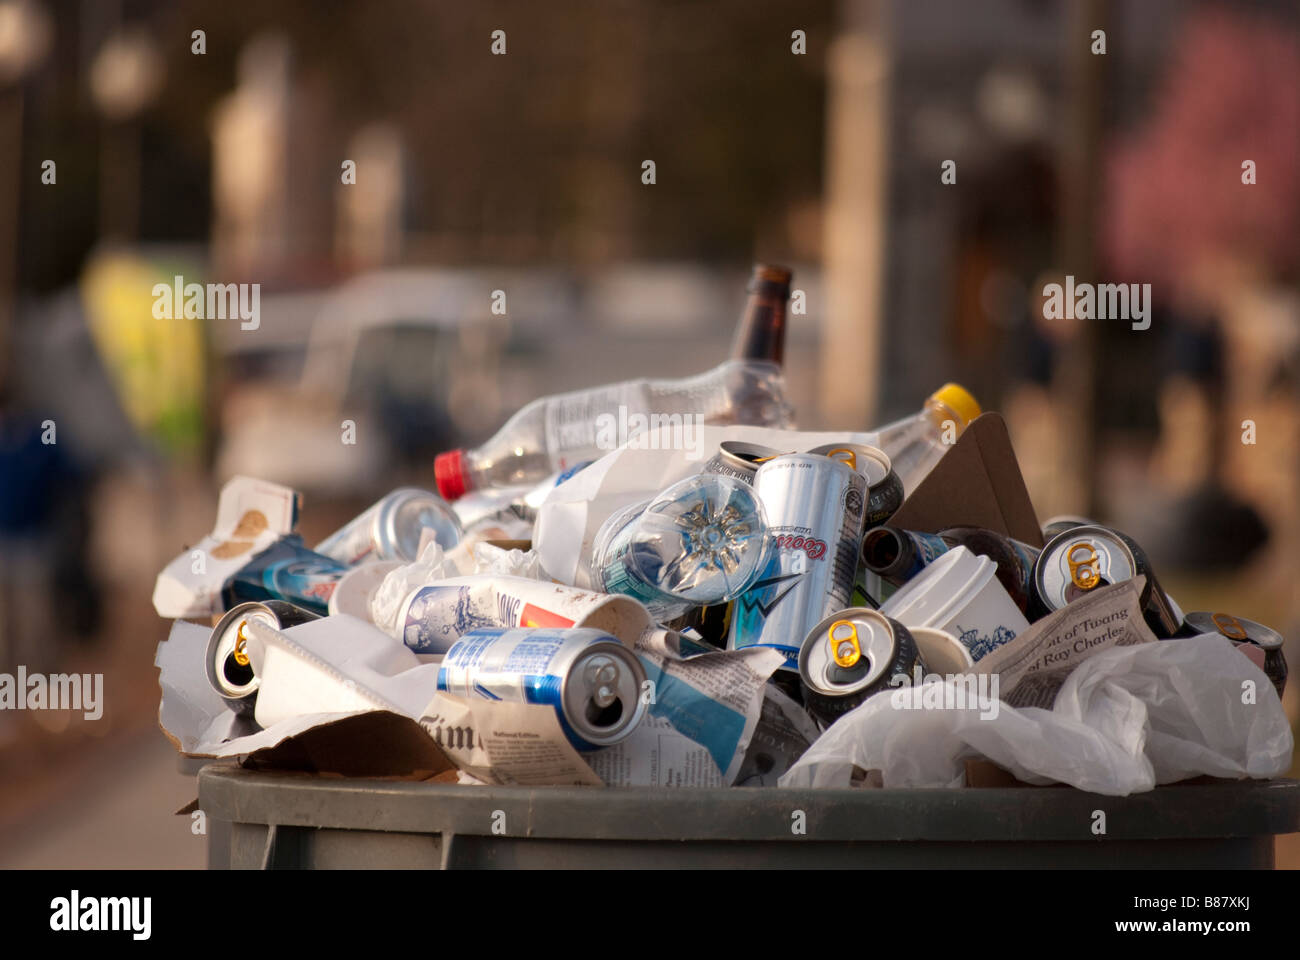 Trash can with empty beer cans in front of Cameron Indoor Stadium the morning after the game Duke University vs - Stock Image